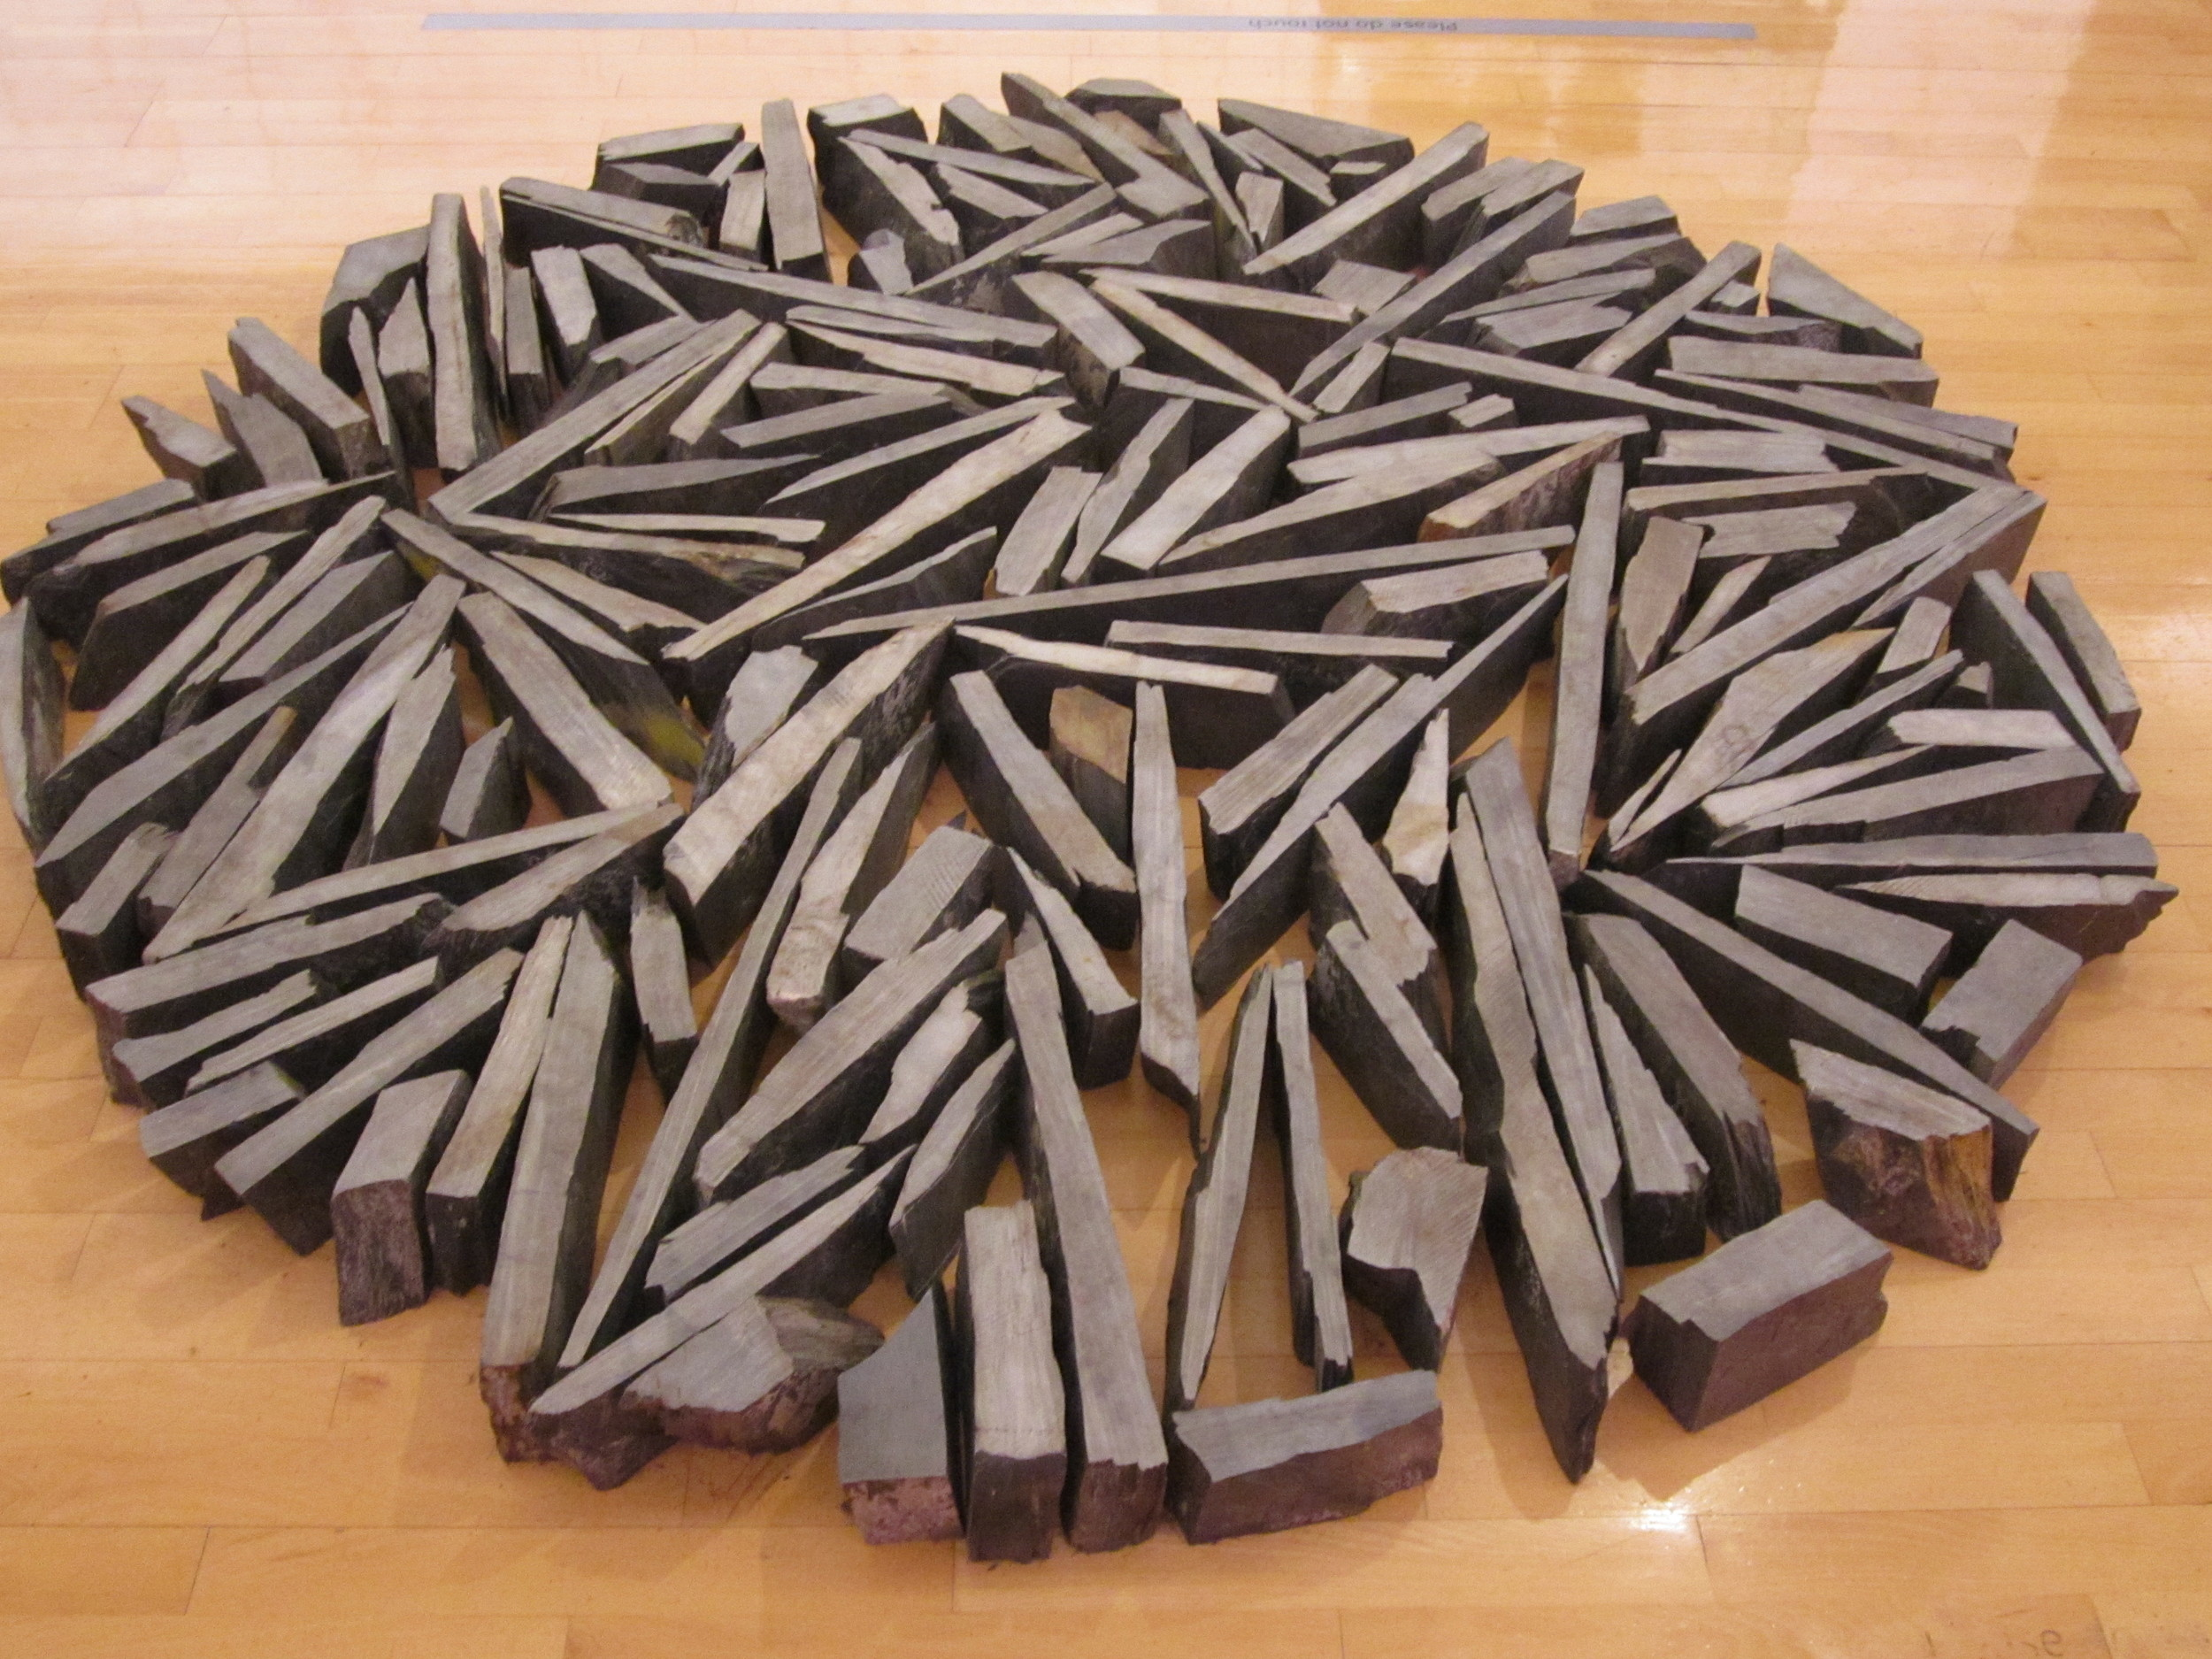 South_Bank_Circle_by_Richard_Long,_Tate_Liverpool.jpg